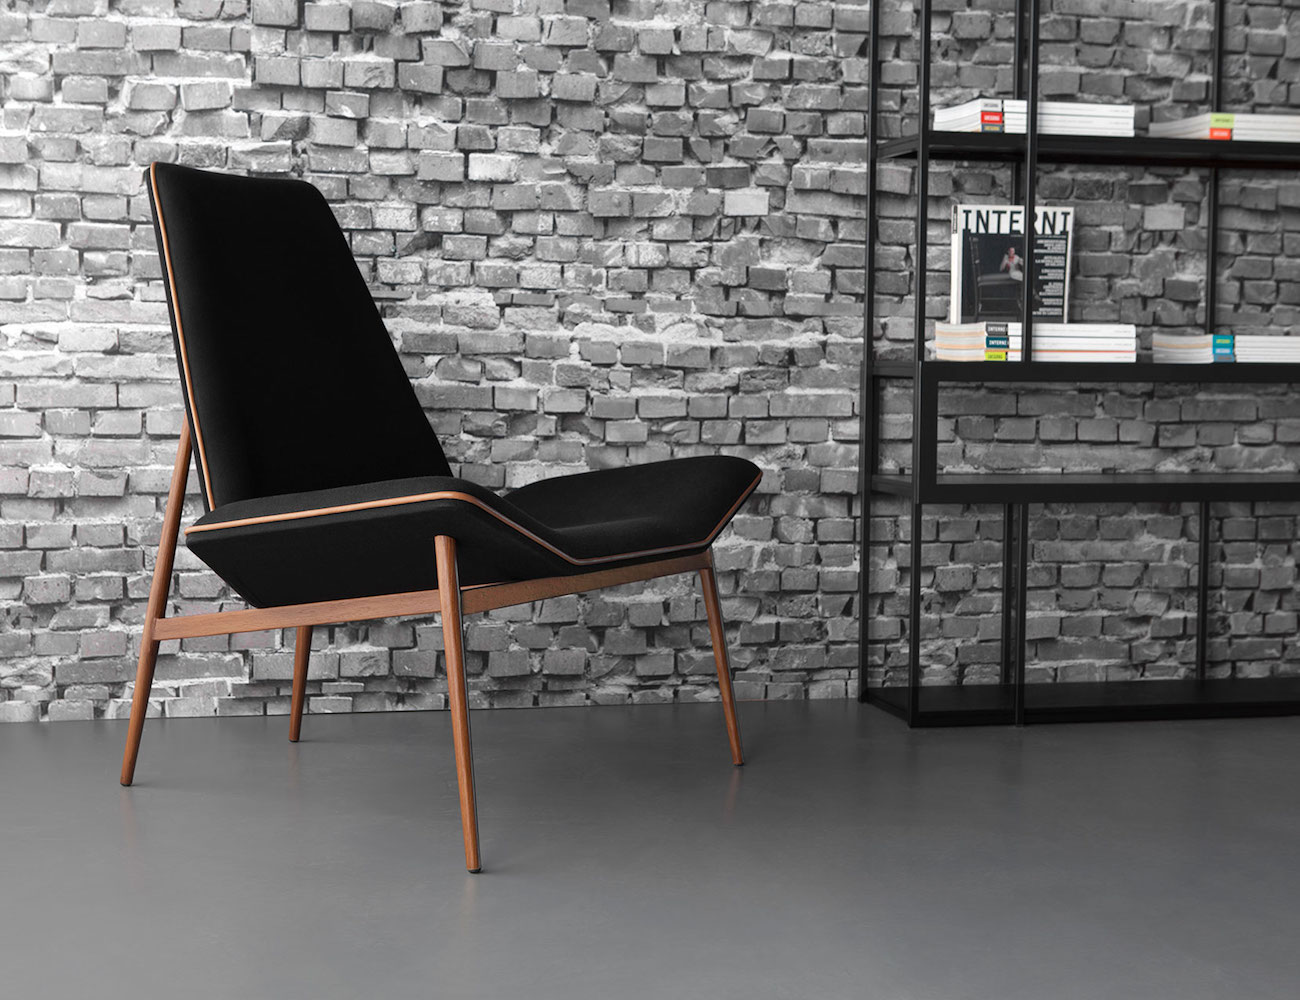 Modloft Kent Lounge Chair combines minimalism and modernism